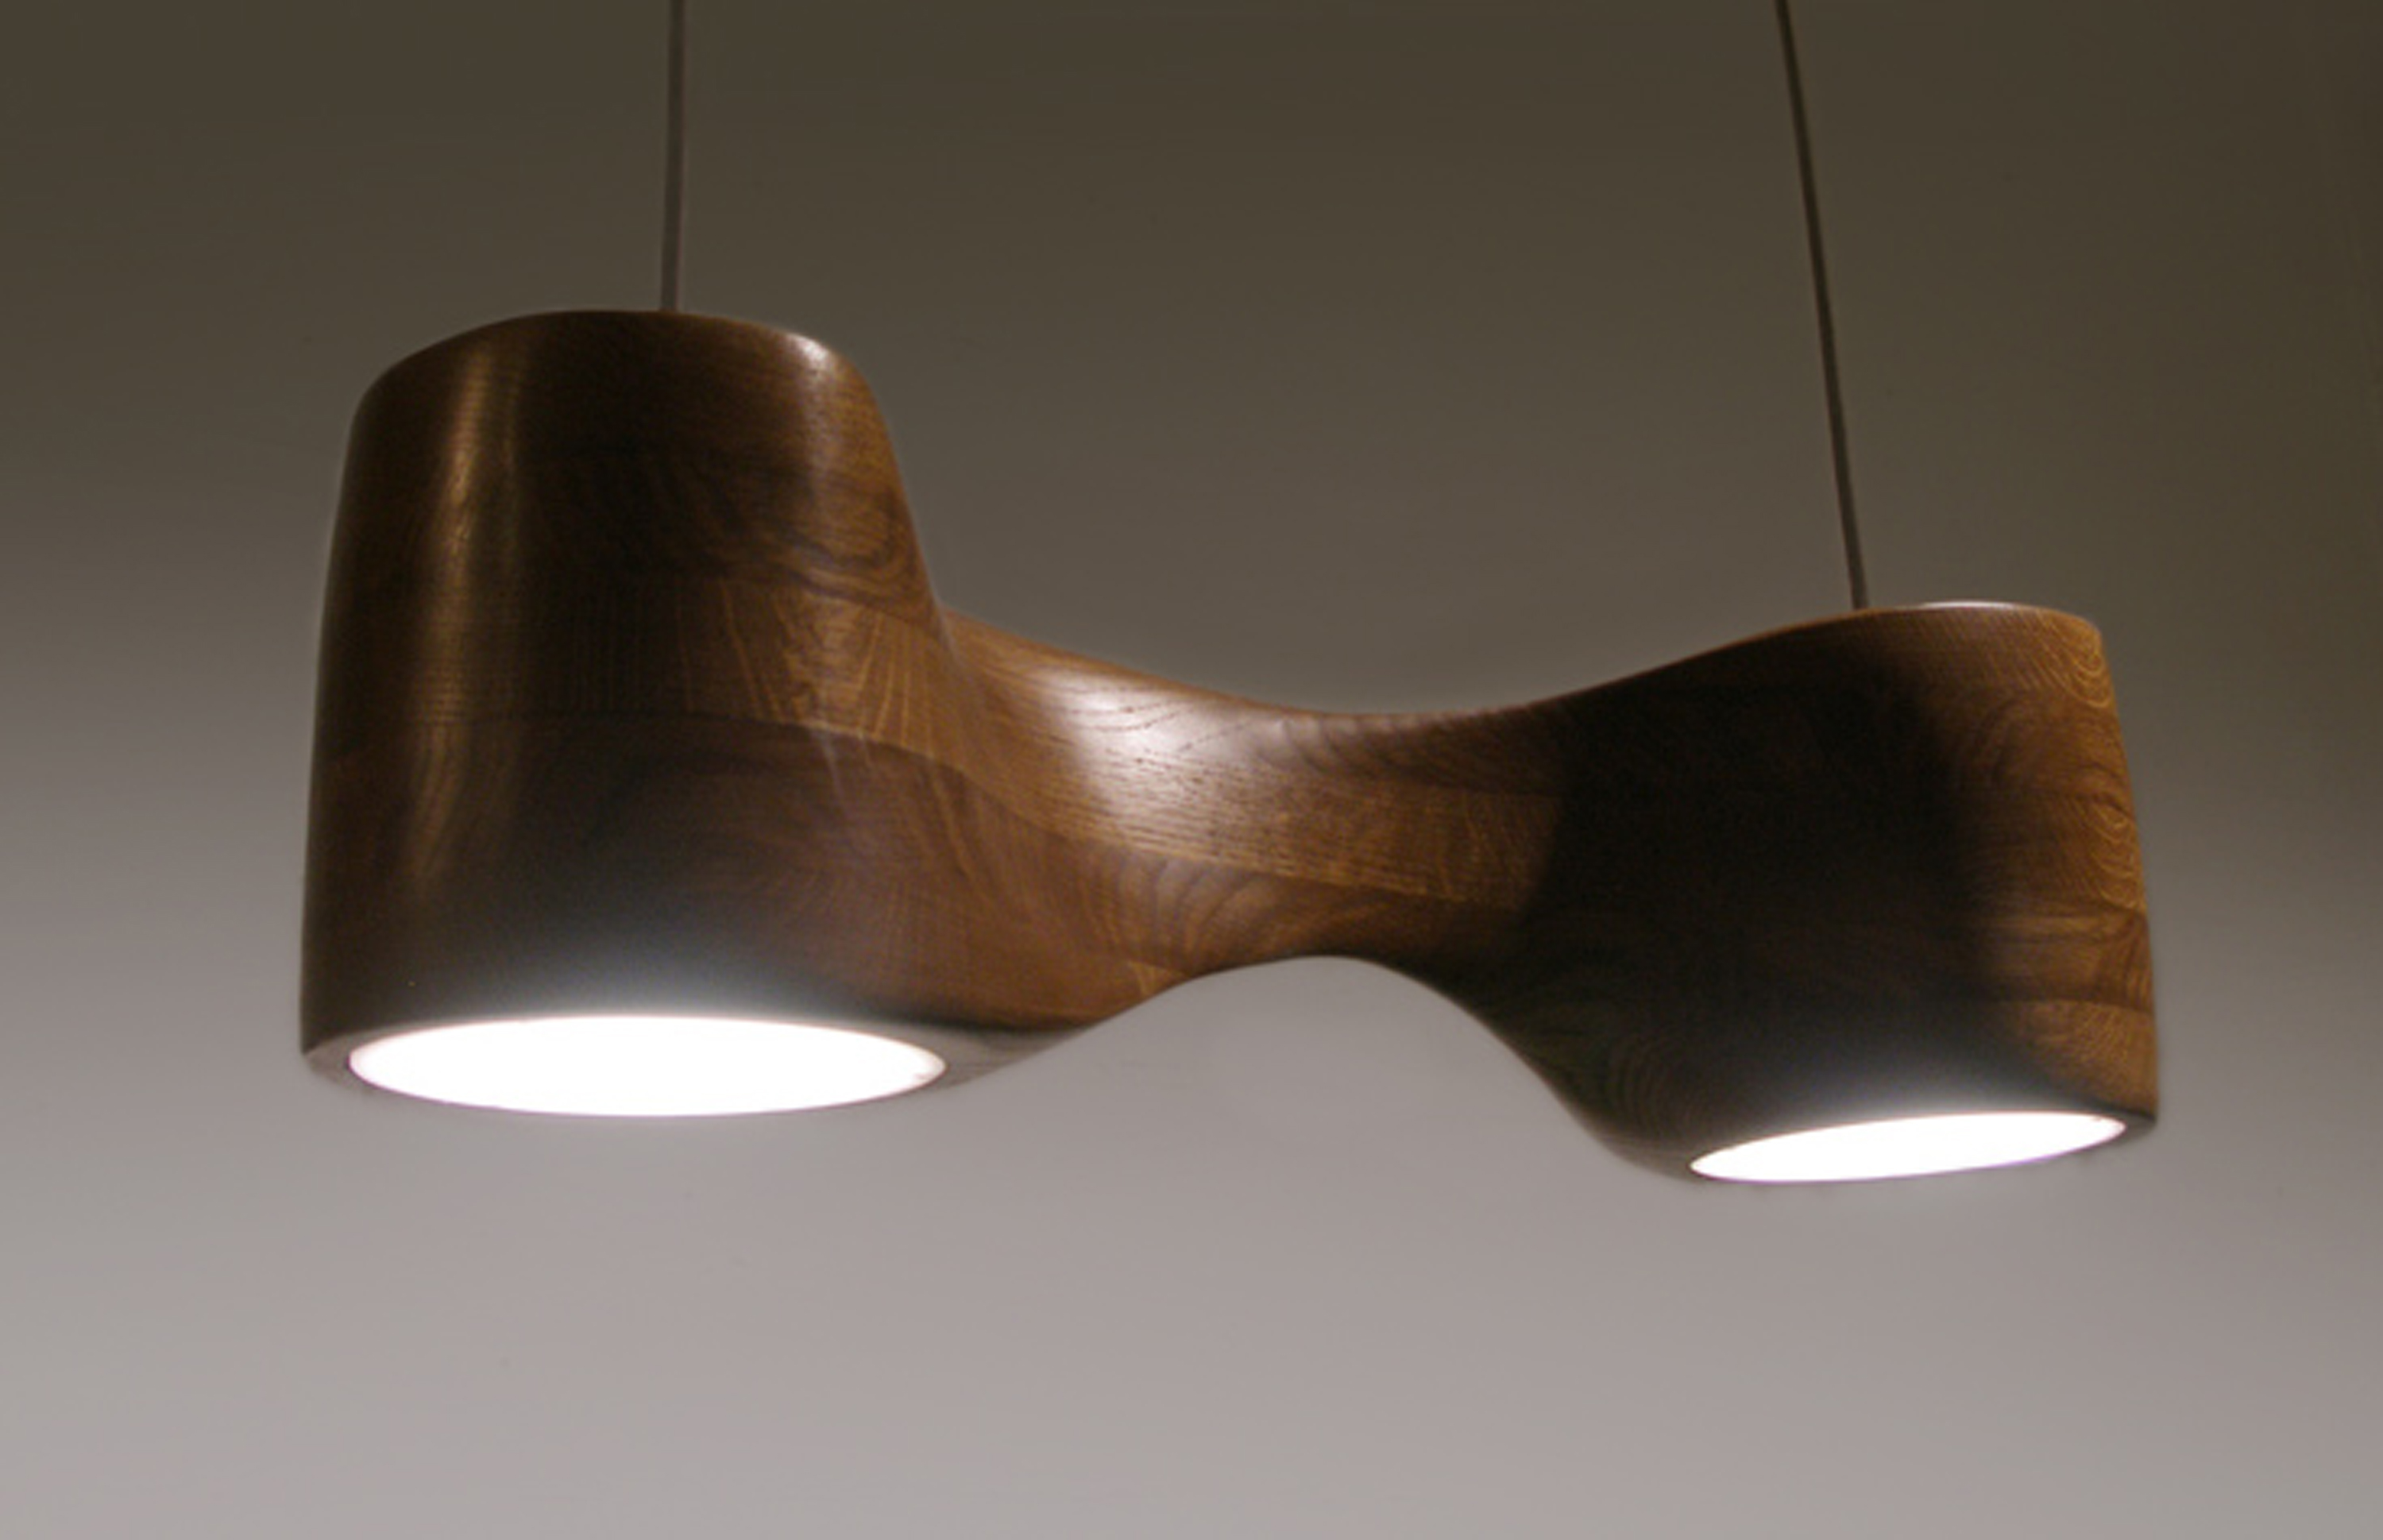 This is a photo of a sculpted pendant lamp in oak seen from three-quarters view